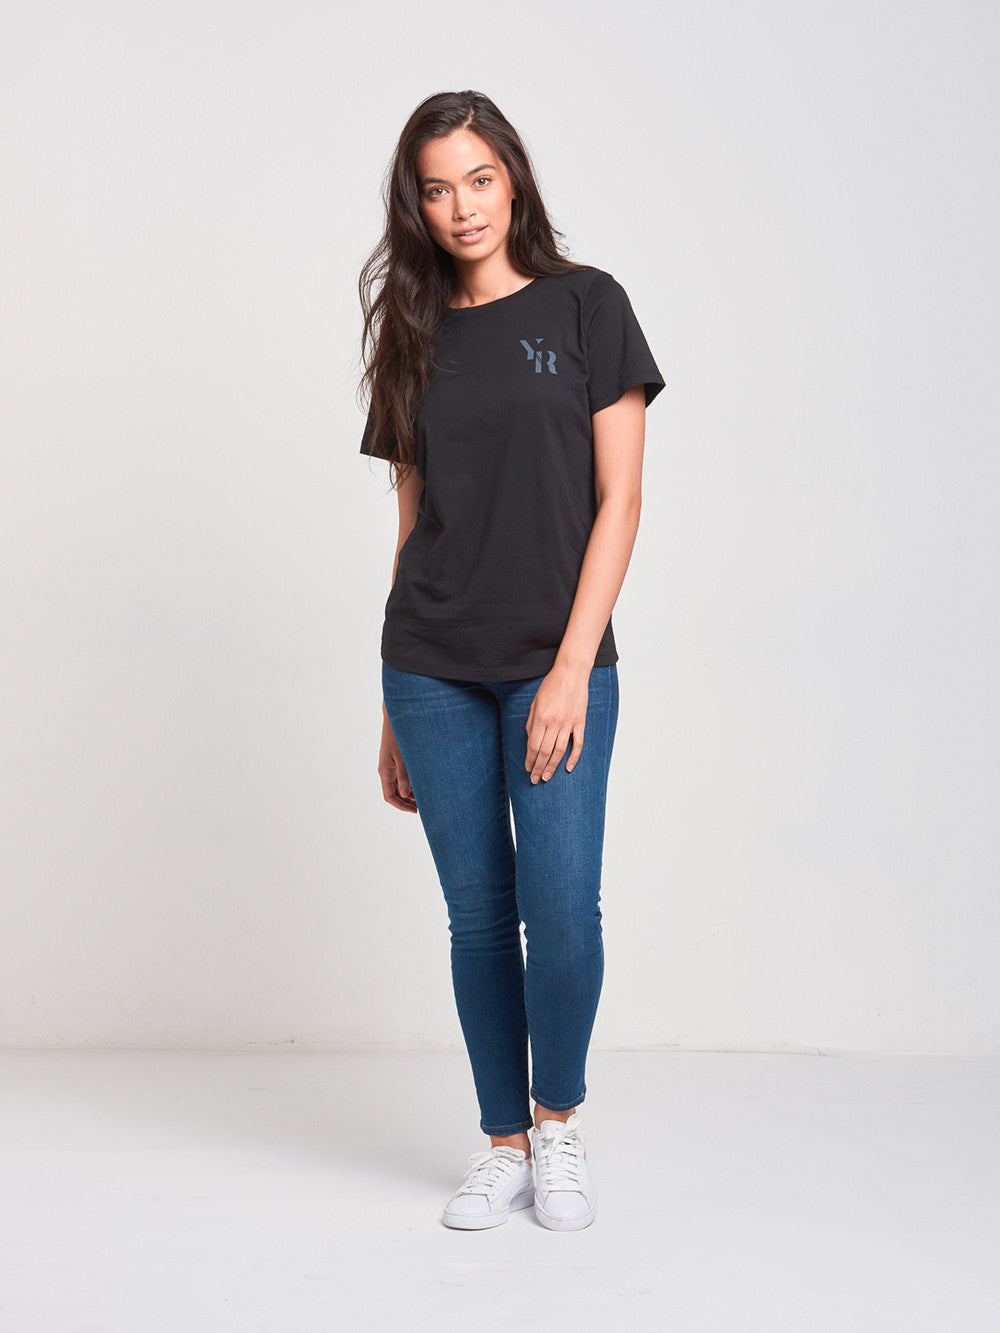 Reckless Girls Womens - Tops - Tees Gatsby BF Tee- Black